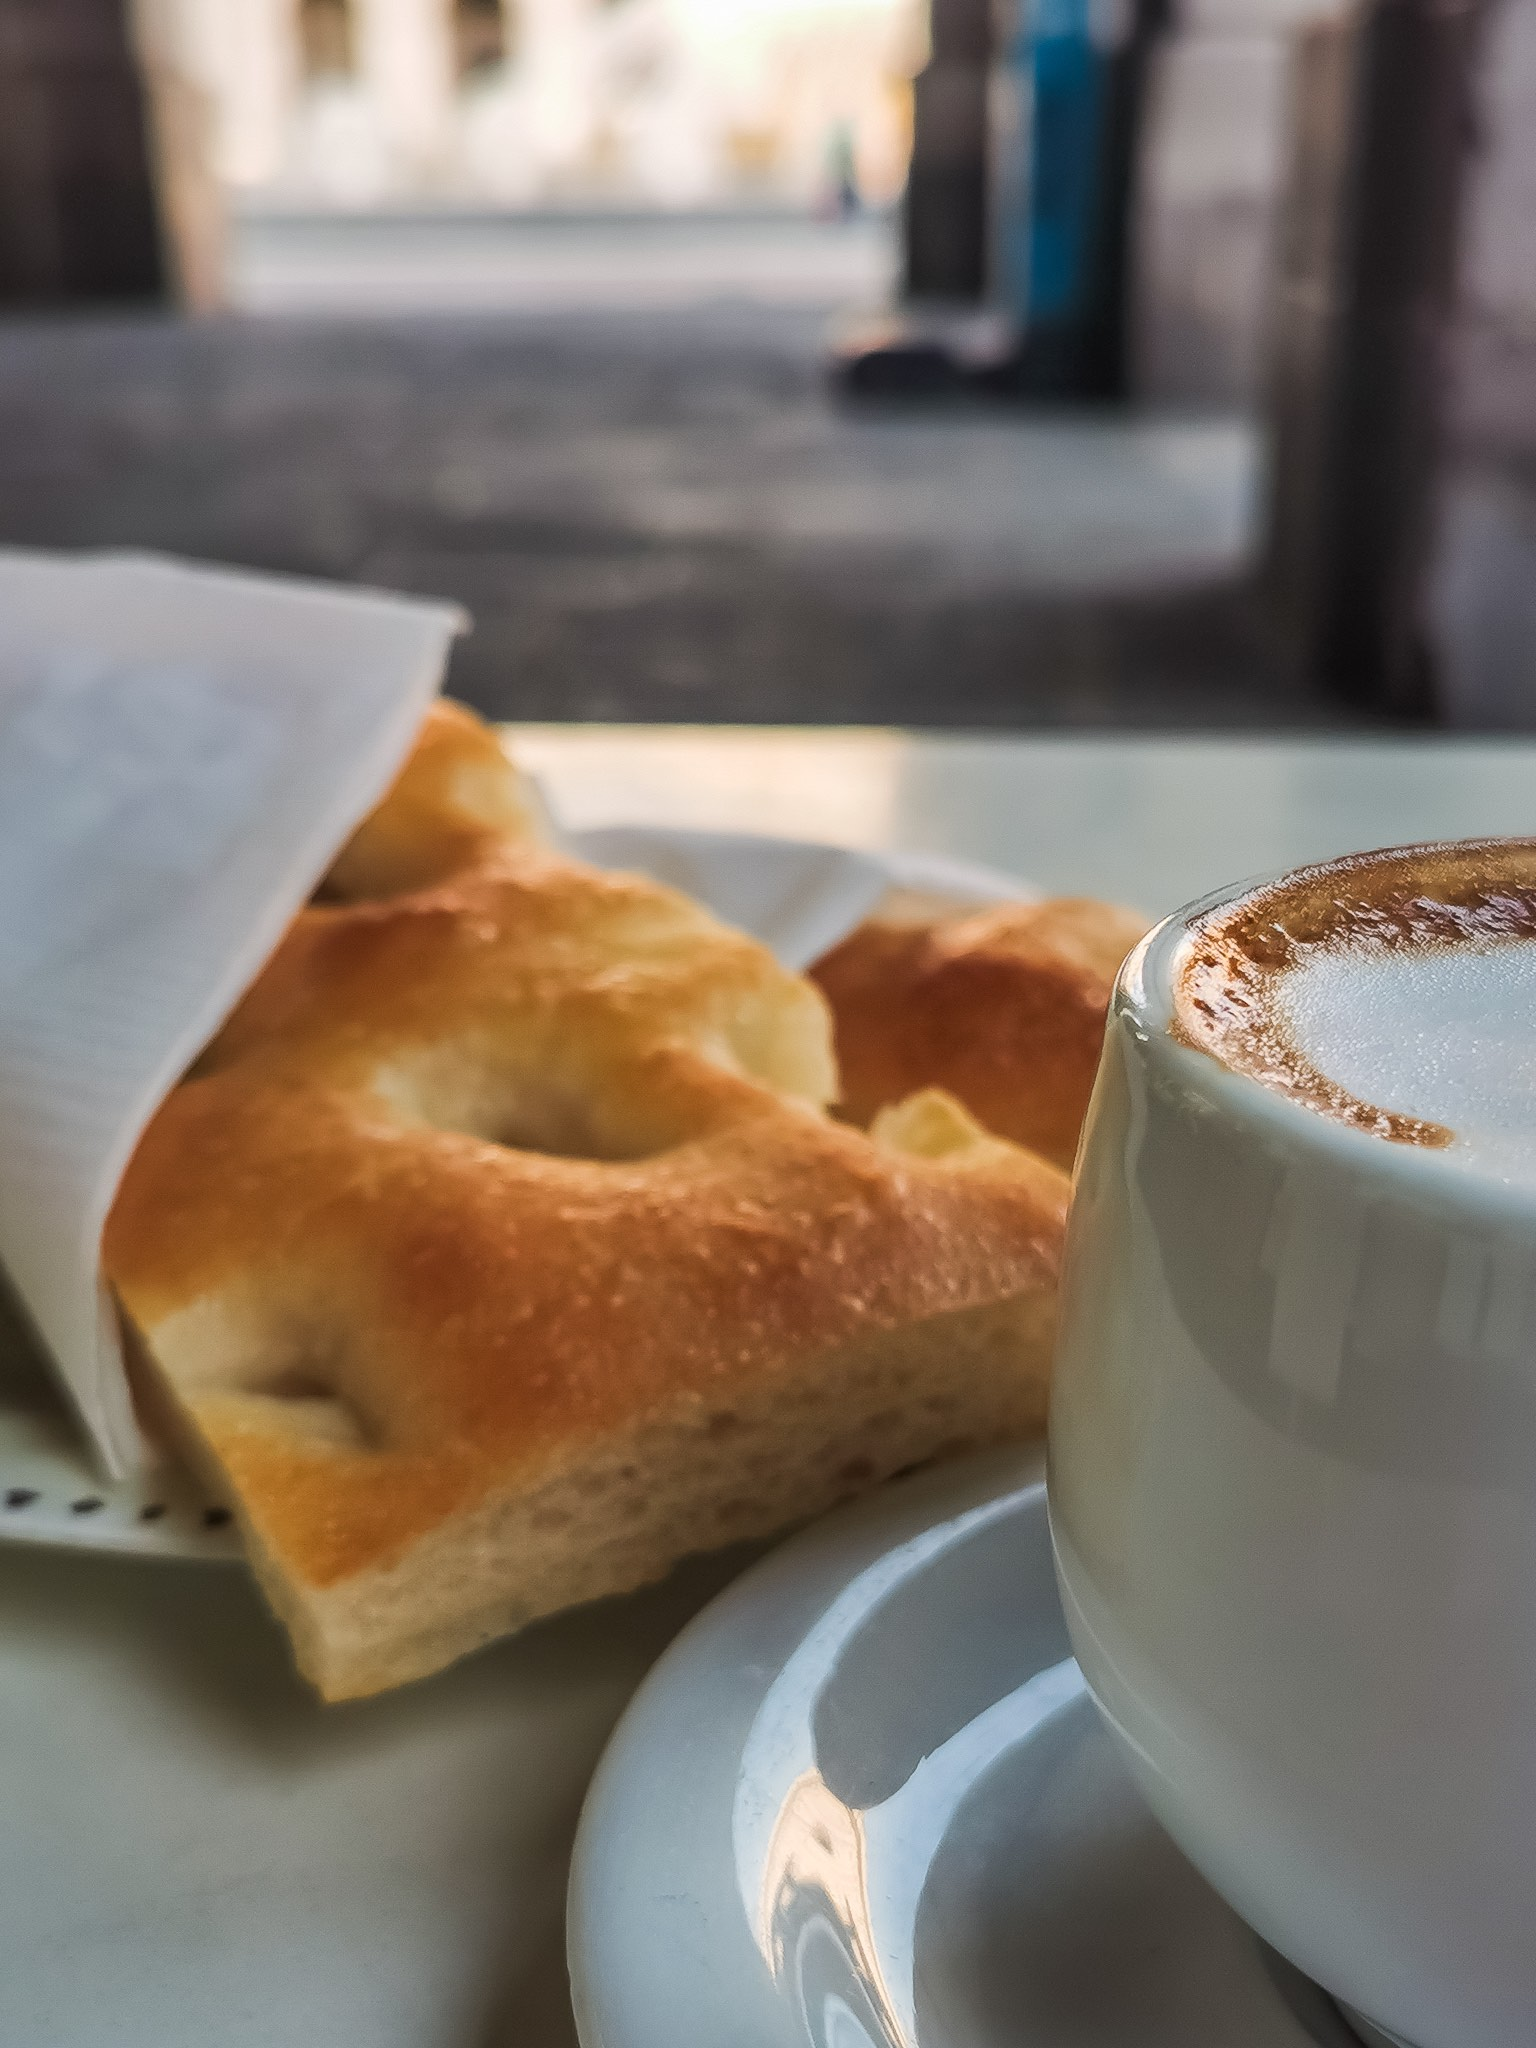 Cappuccino and focaccia, the typical breakfast in Genoa